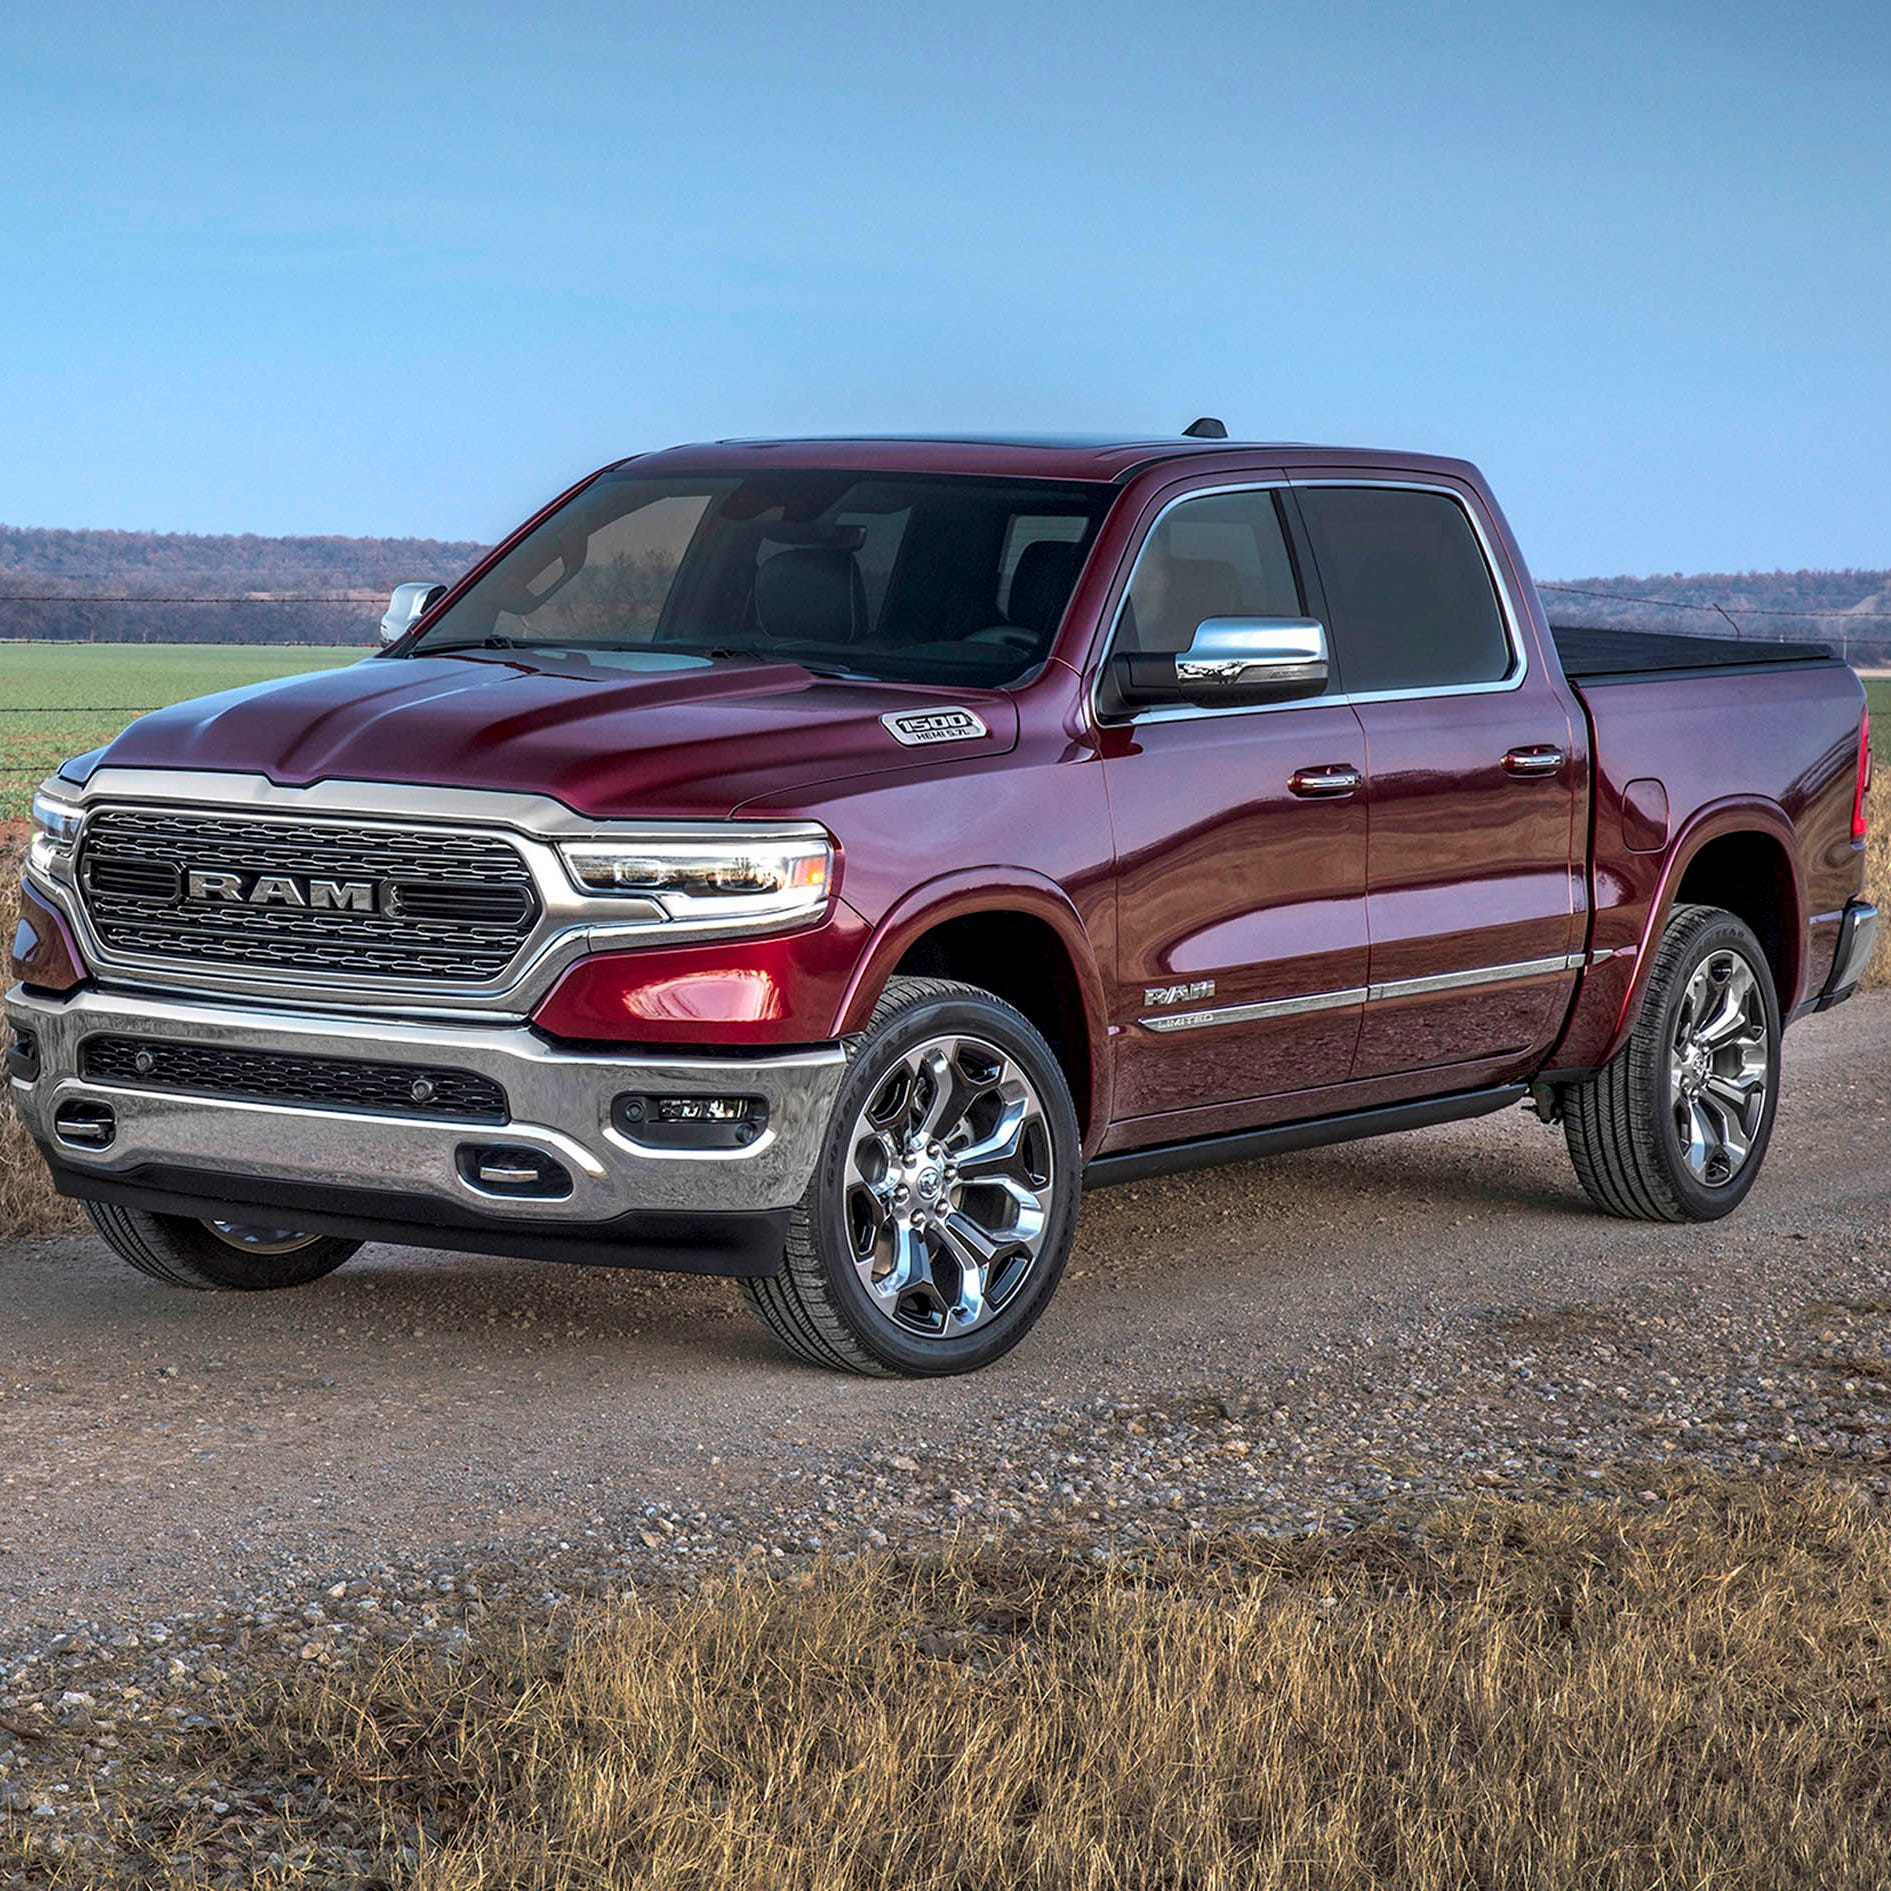 Ram 1500: My vote for North American Truck of the Year